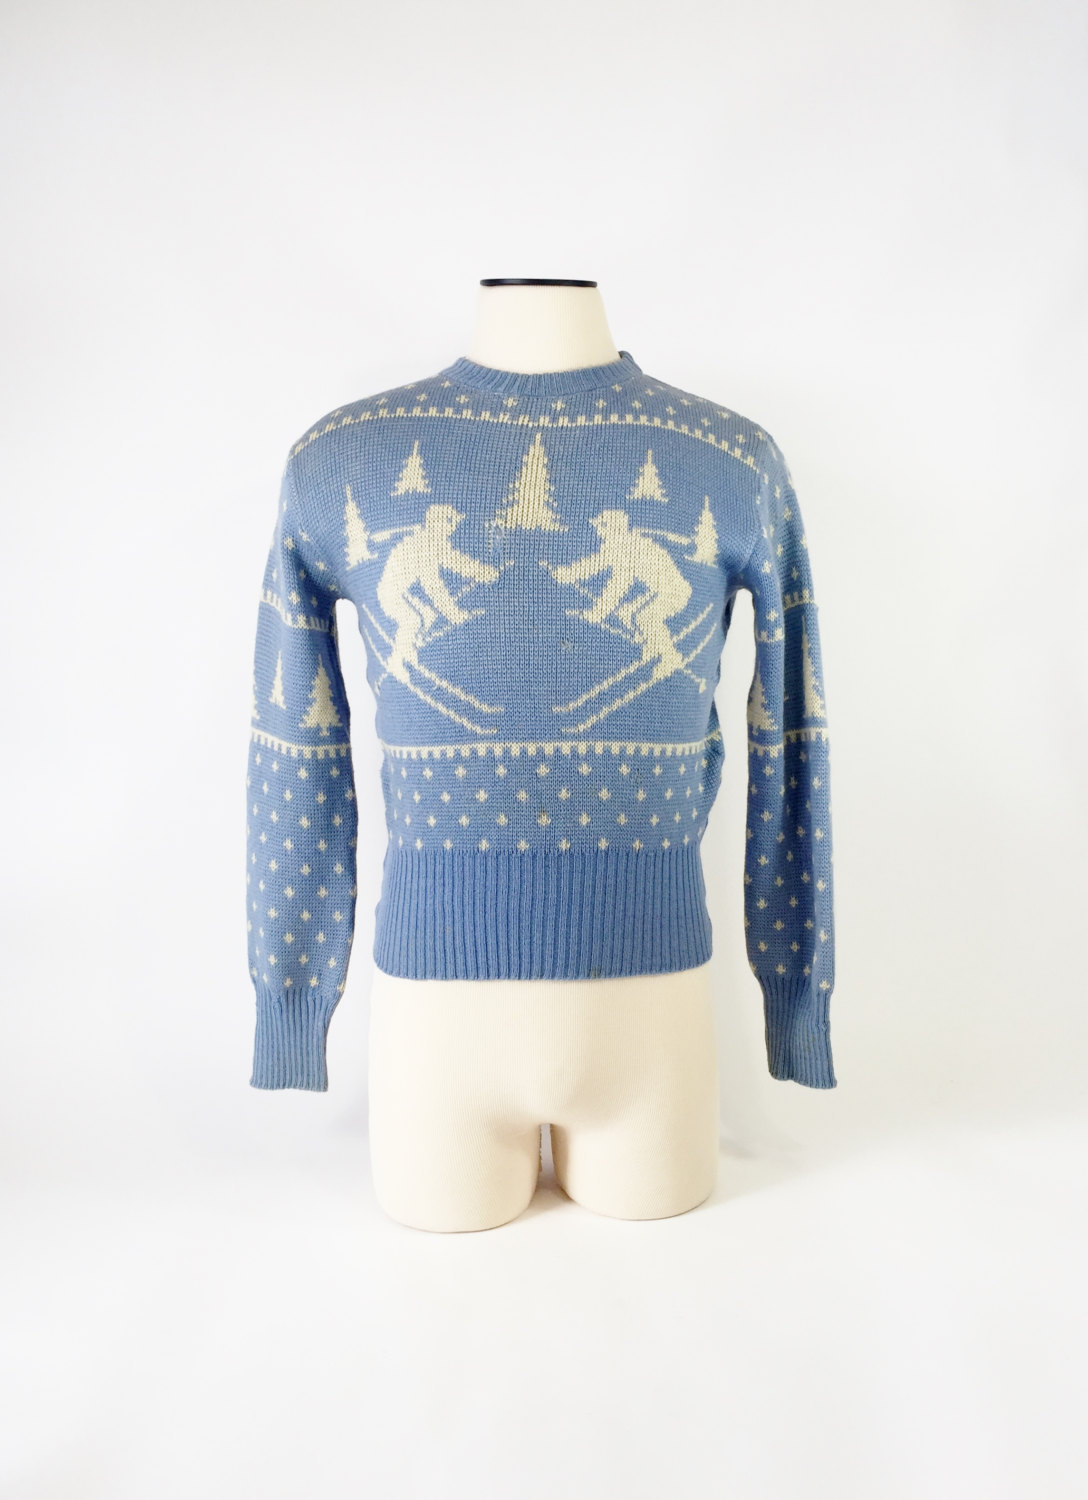 1940's ski sweater by Jersild. Normally worn with high waisted pant.